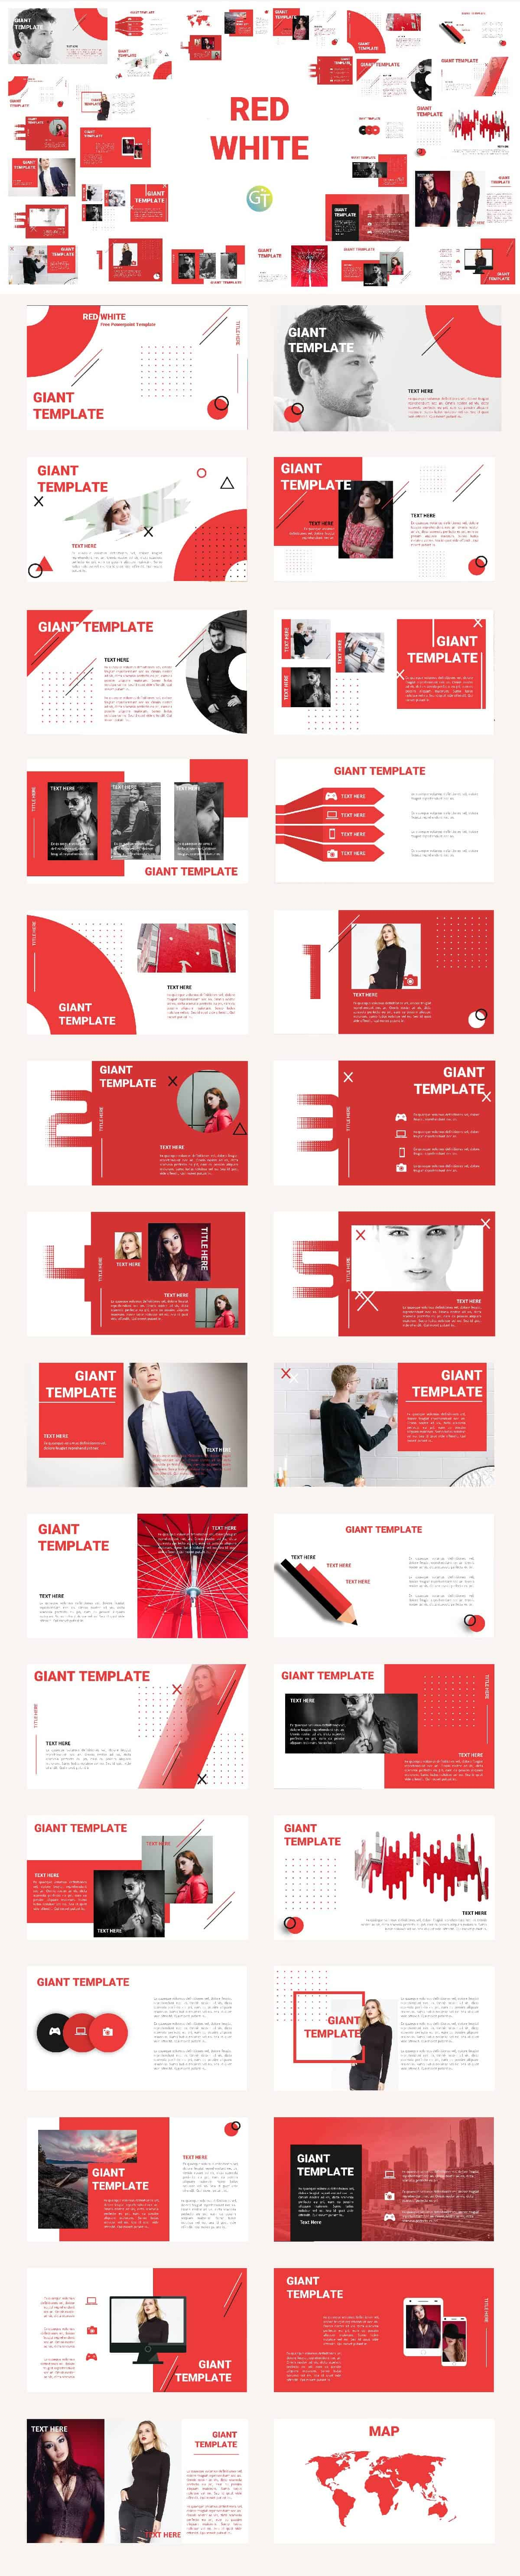 Template PPT Design Free Dwonload